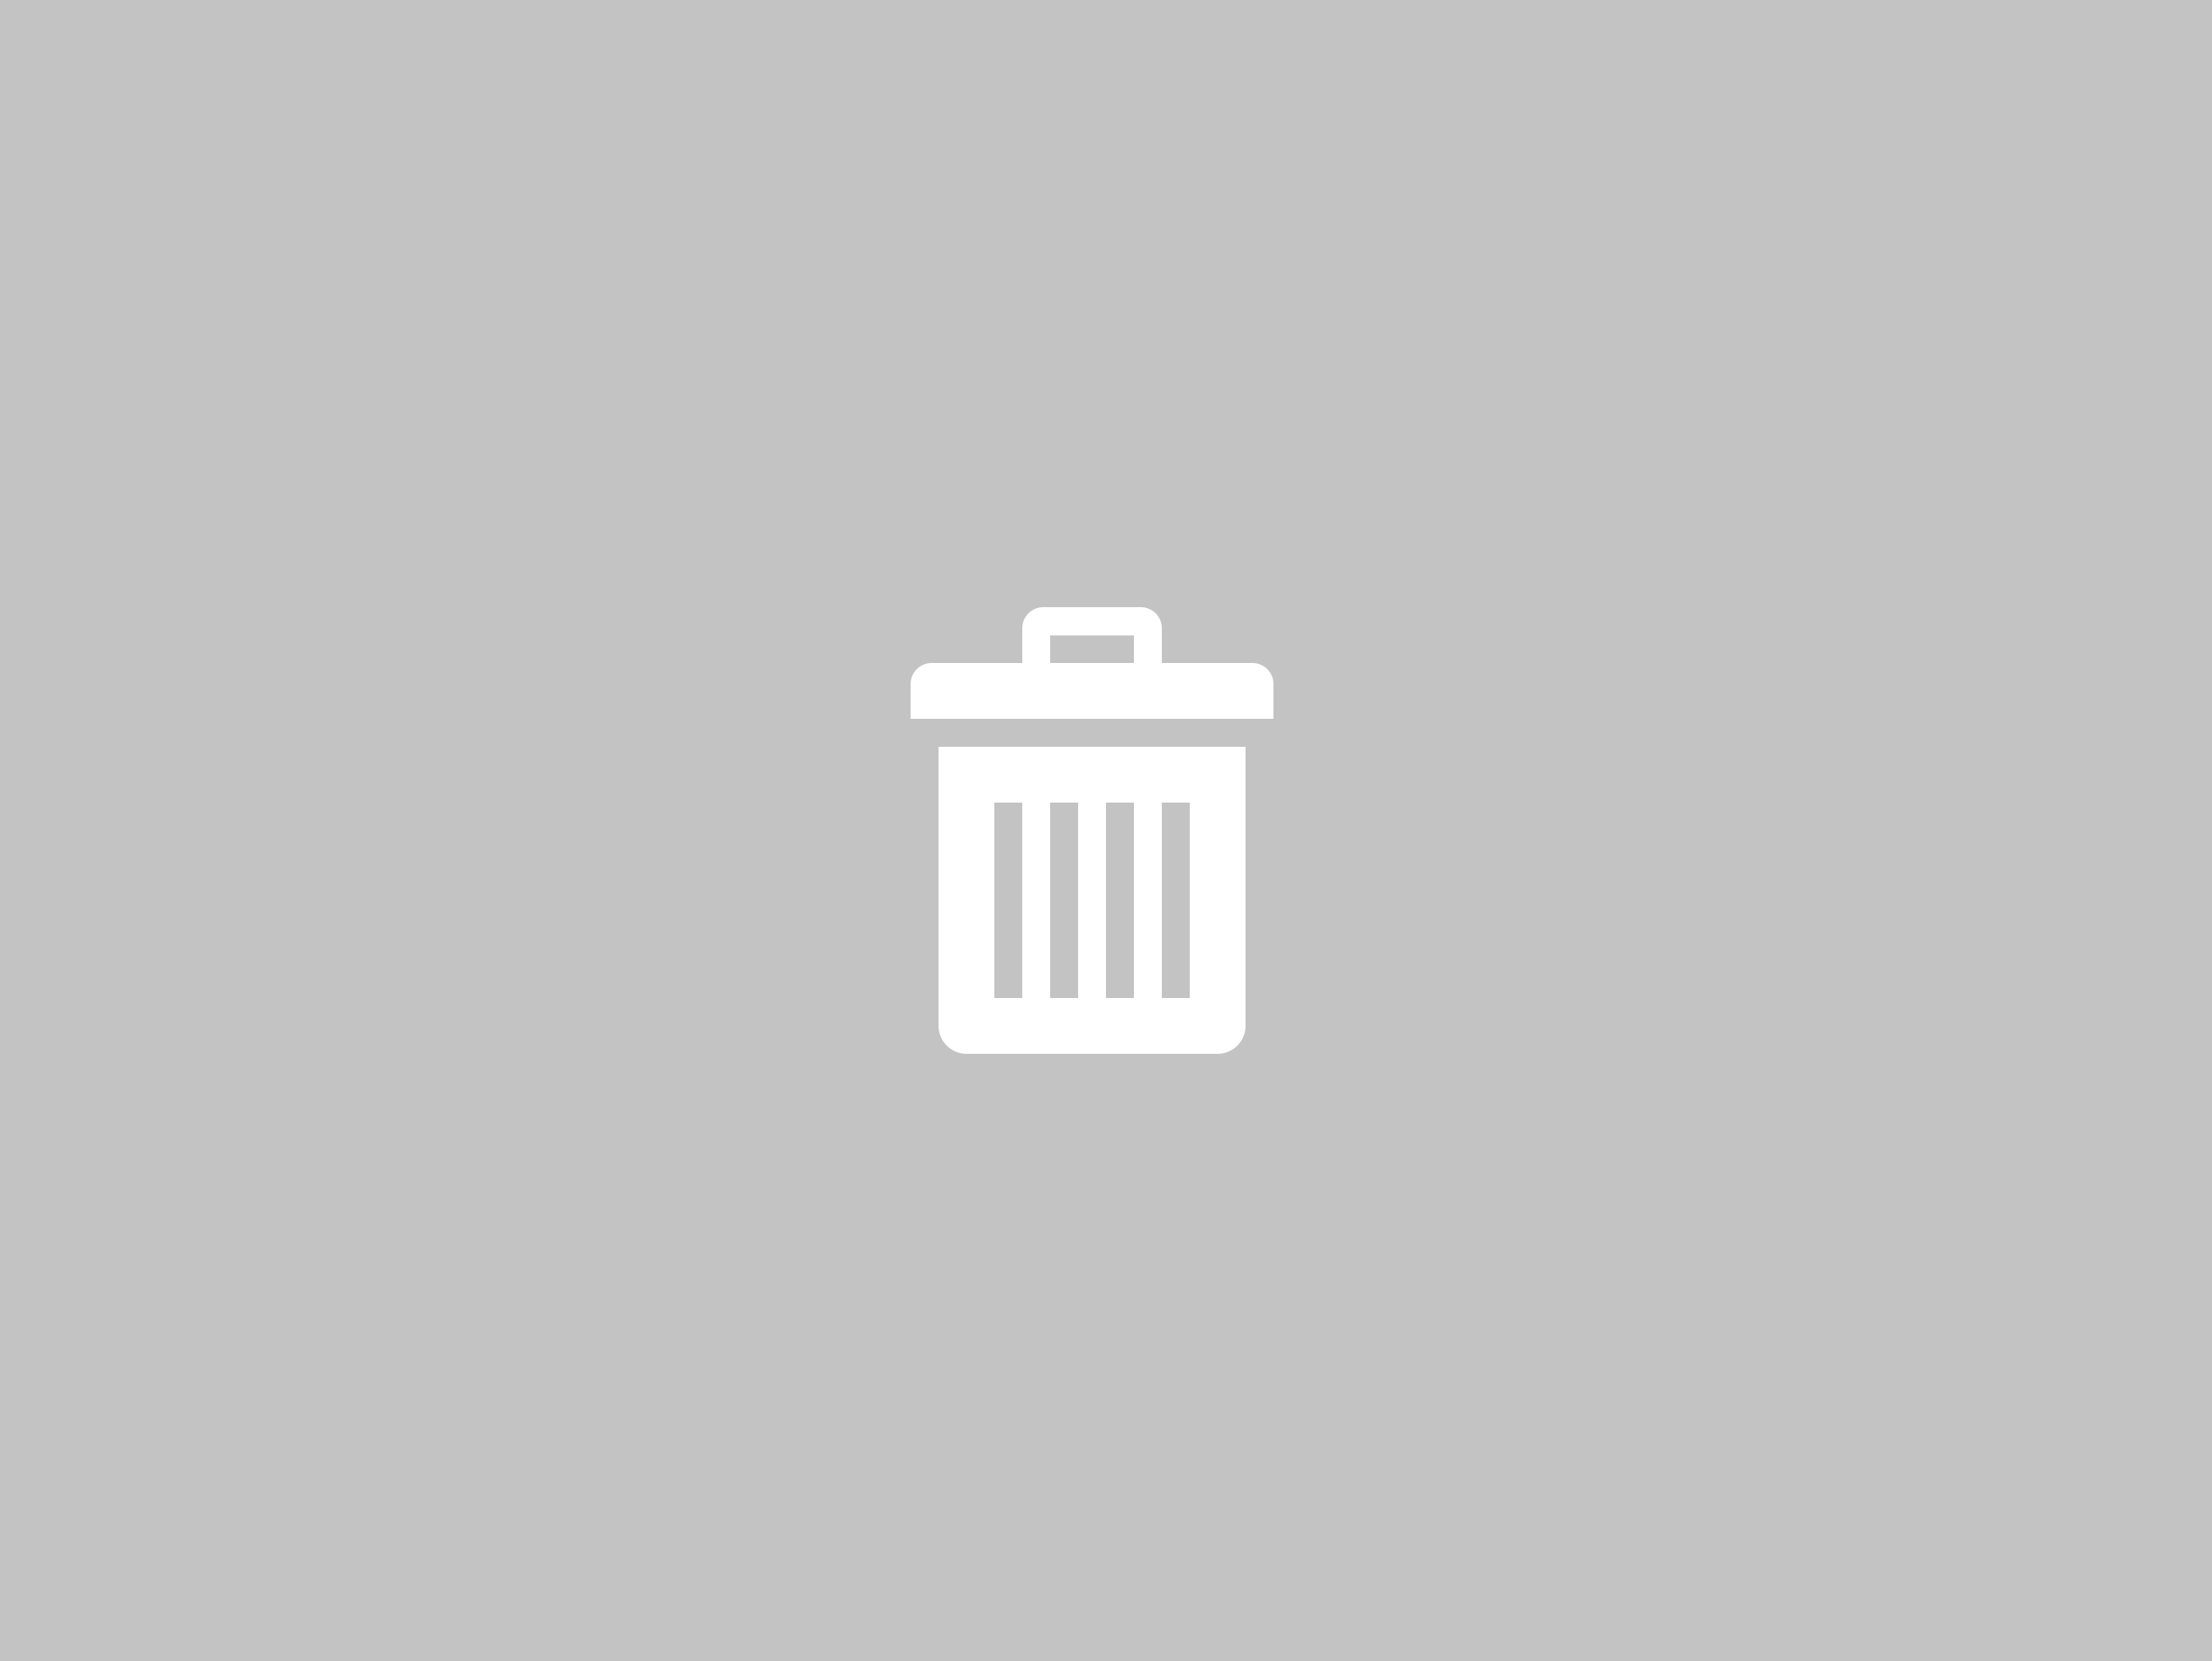 Download our app and earn rewards easily! - Univoxcommunity